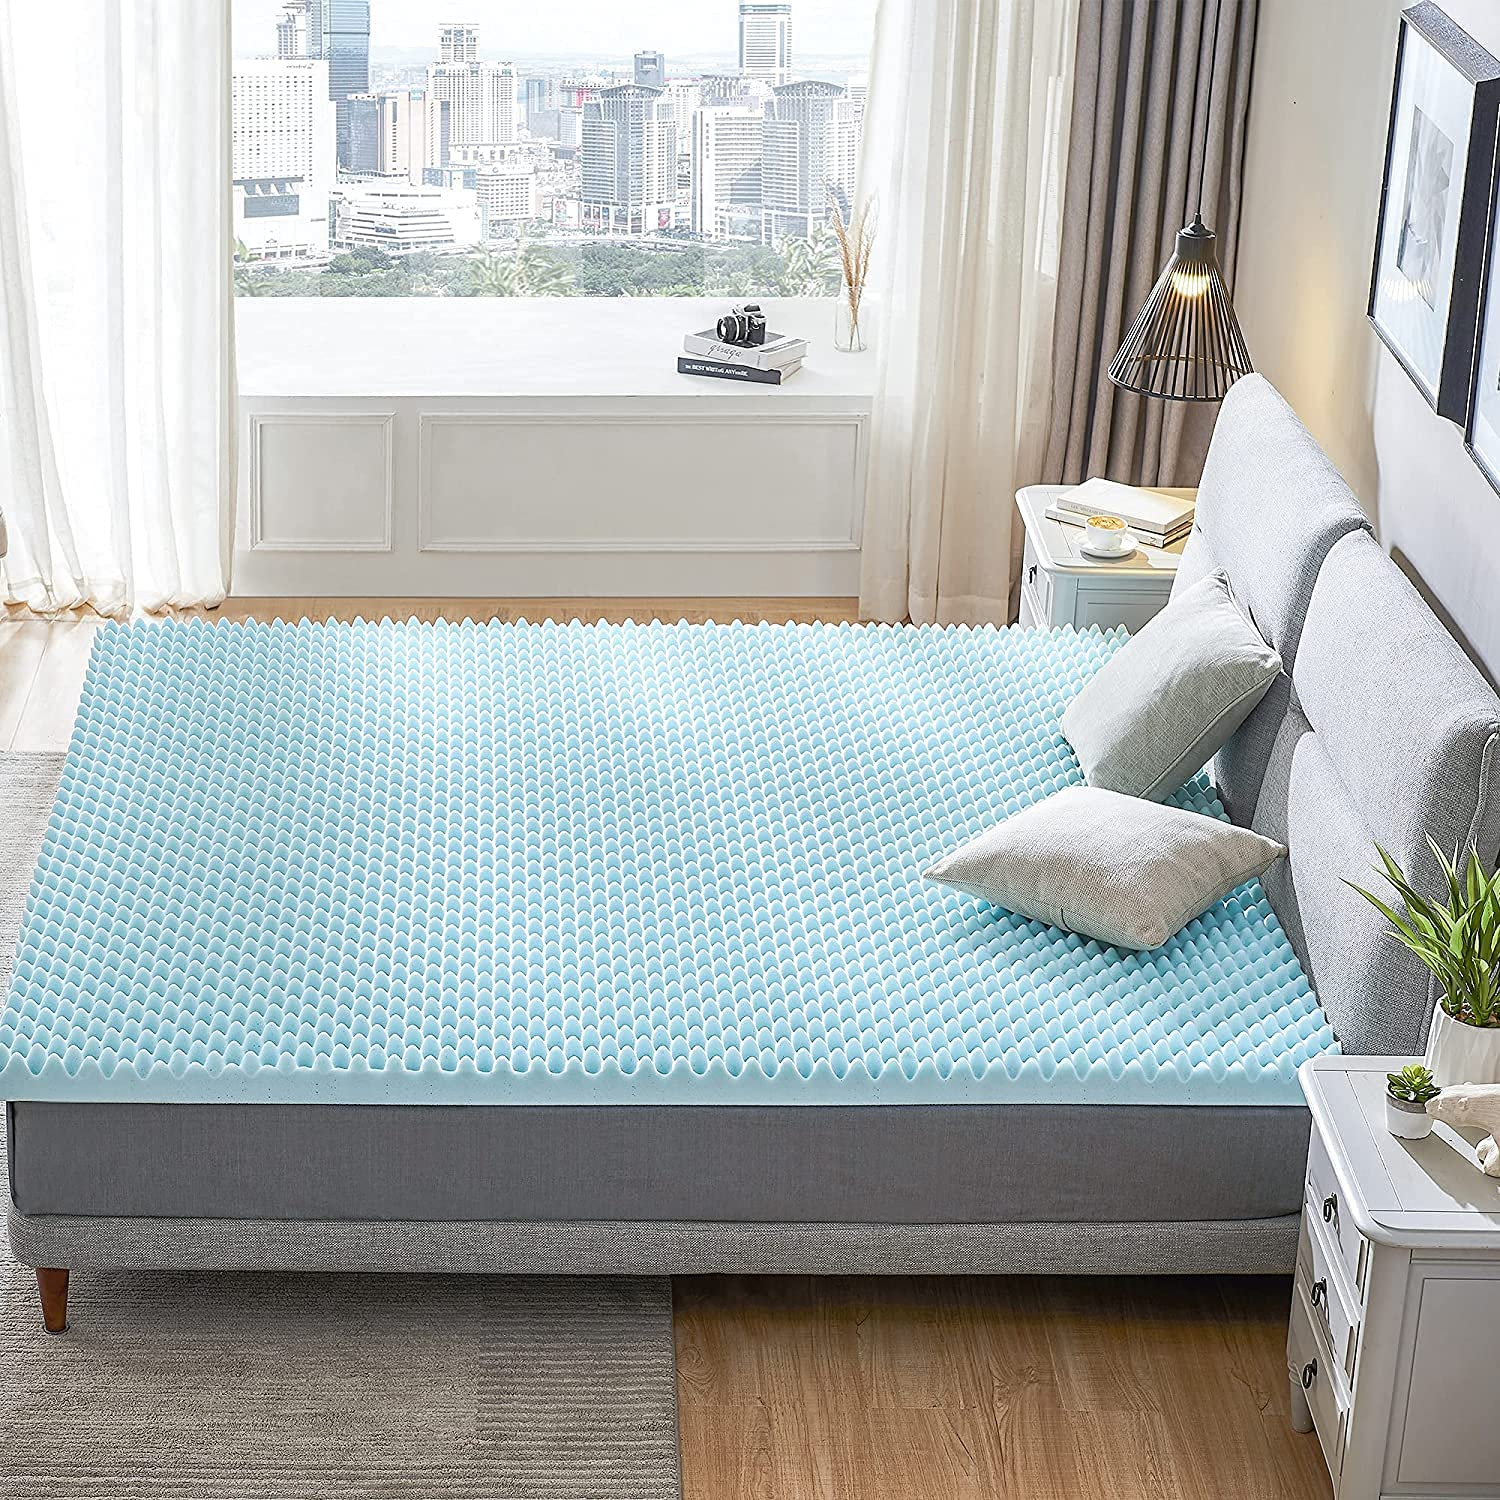 RECCI 2.5-Inch Egg Crate Mattress Popular products King Topper Pressure Relief Year-end gift M